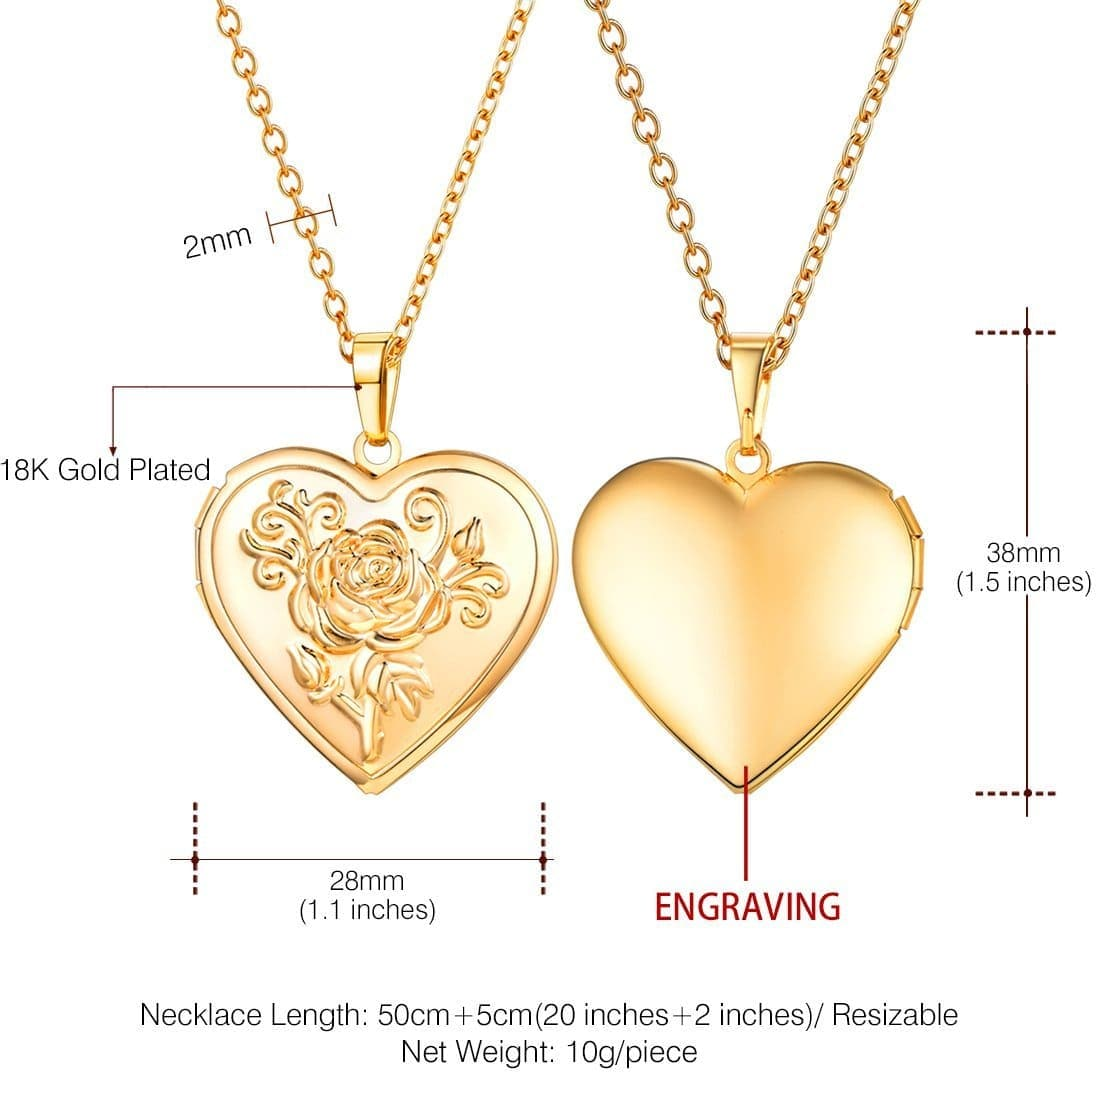 Classic Engravable Heart Locket Necklace Personalized Photo Locket Pendant